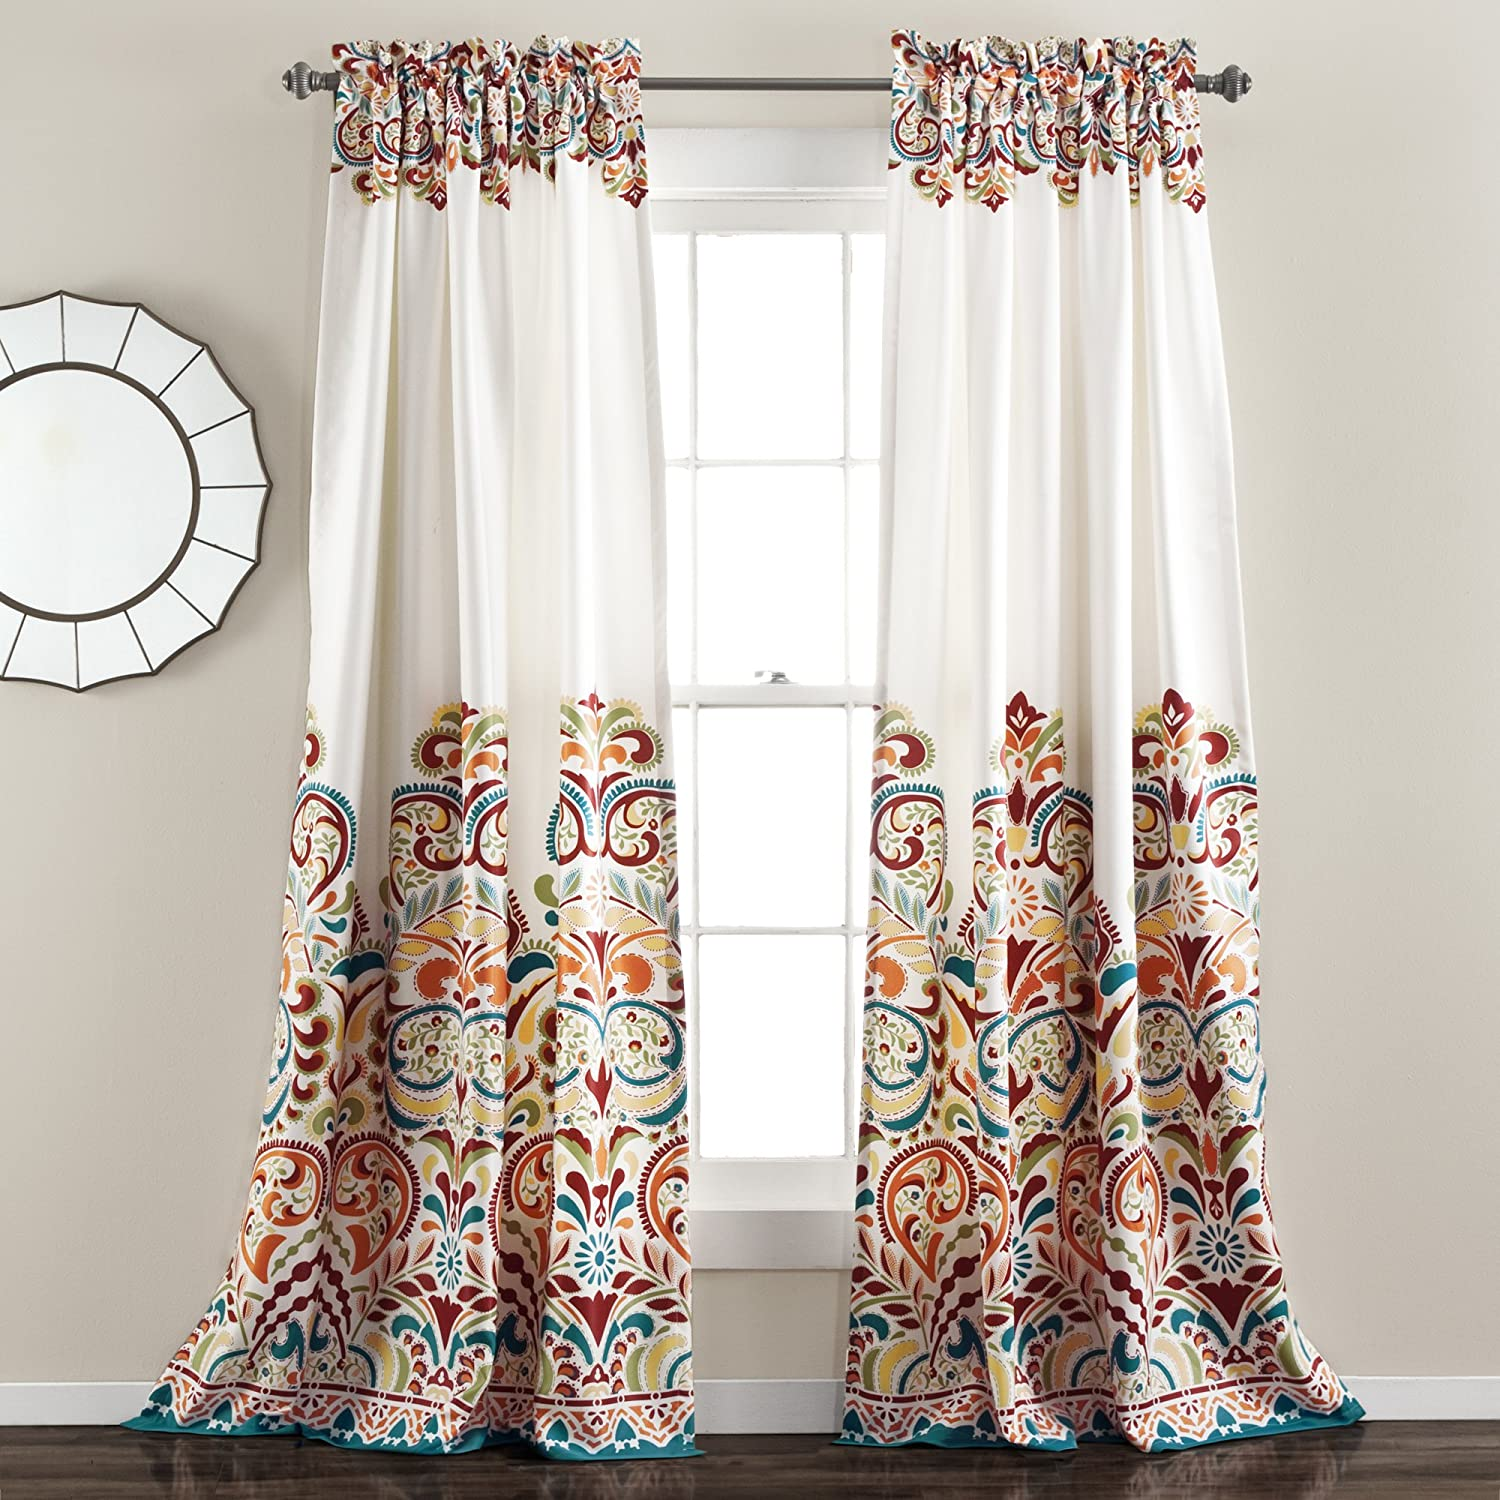 "Lush Decor Clara Curtains Paisley Damask Print Bohemian Style Room Darkening Window Panel Set for Living, Dining, Bedroom (Pair) 95"" x 52"" Turquoise and Tangerine"